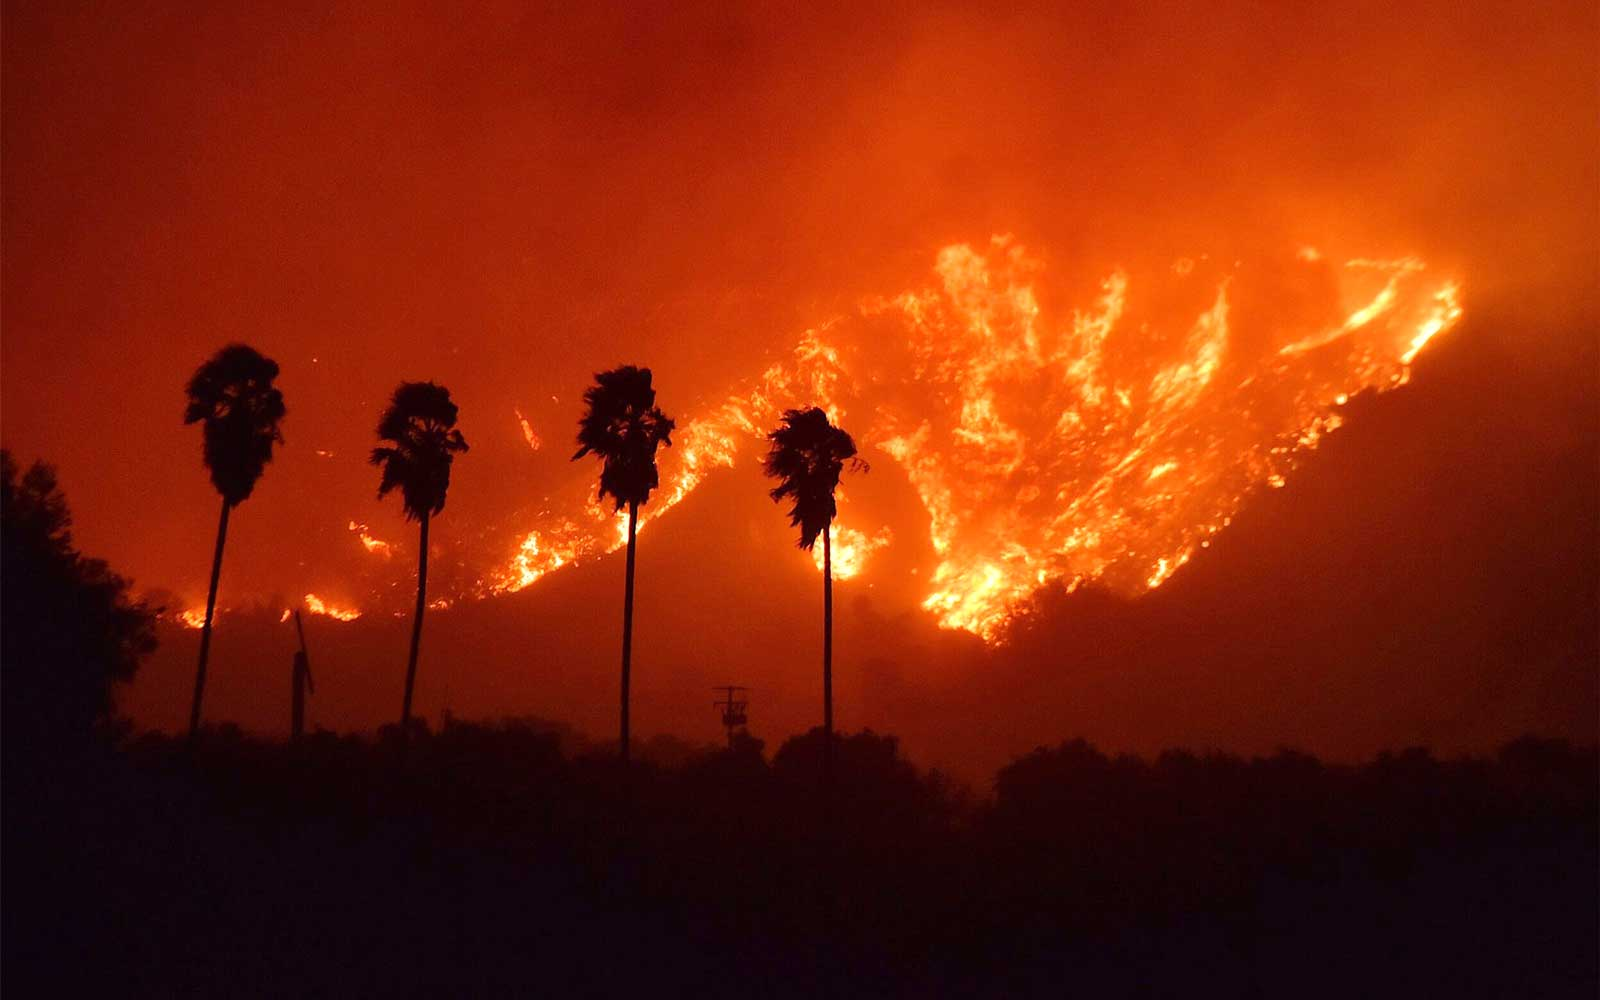 A handout photo made available by the Ventura County Fire Department showing the 'Thomas Fire' which began in Ventura, Calif. on Dec. 4, 2017